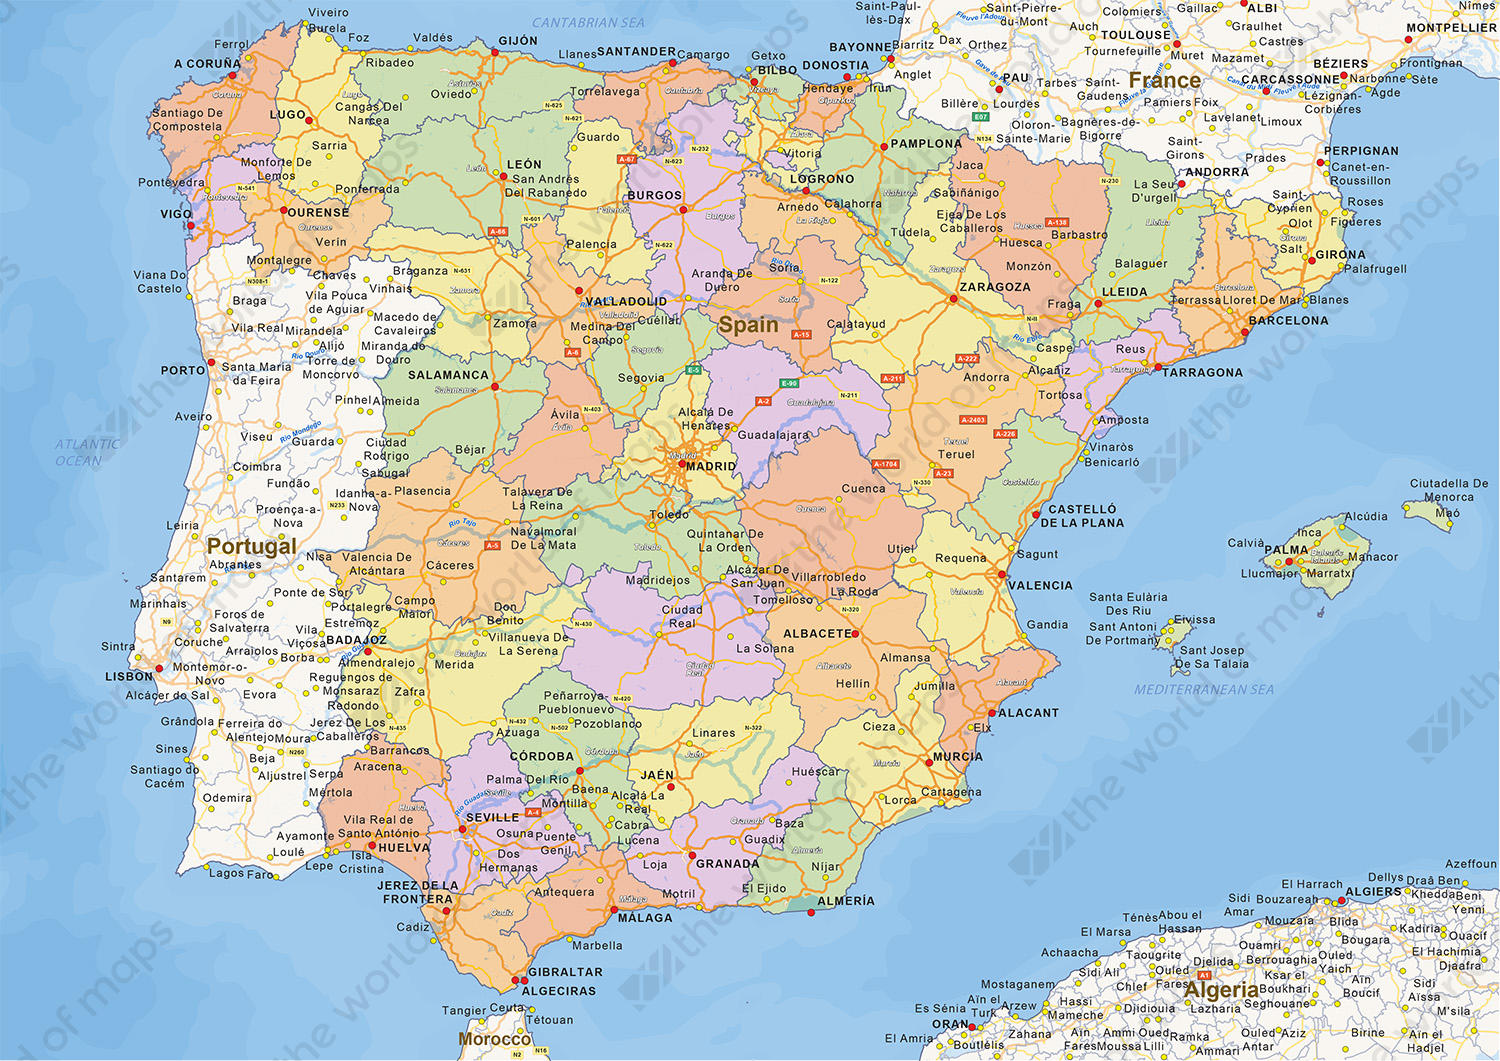 Spain On Map Of World.Digital Political Map Of Spain 1466 The World Of Maps Com